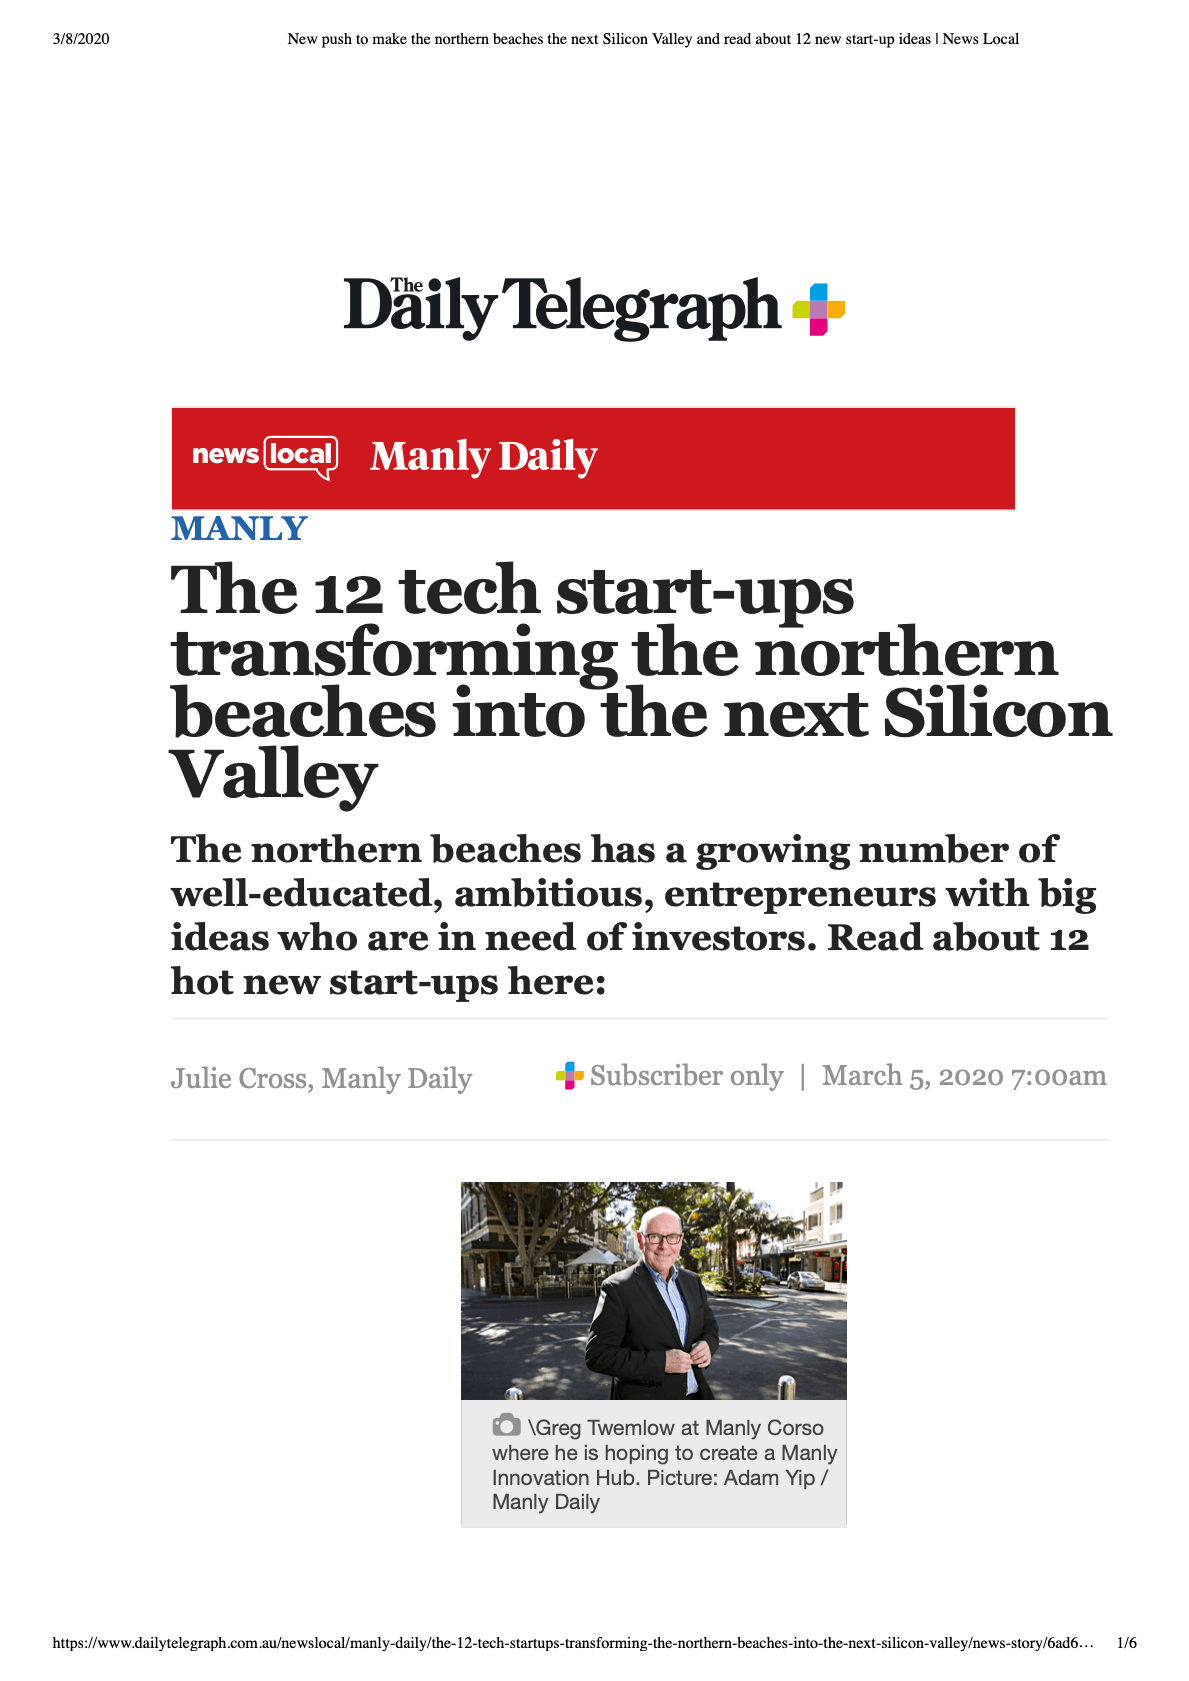 The 12 tech start-ups transforming the northern beaches into the next Silicon Valley by SEVENmile Venture Lab